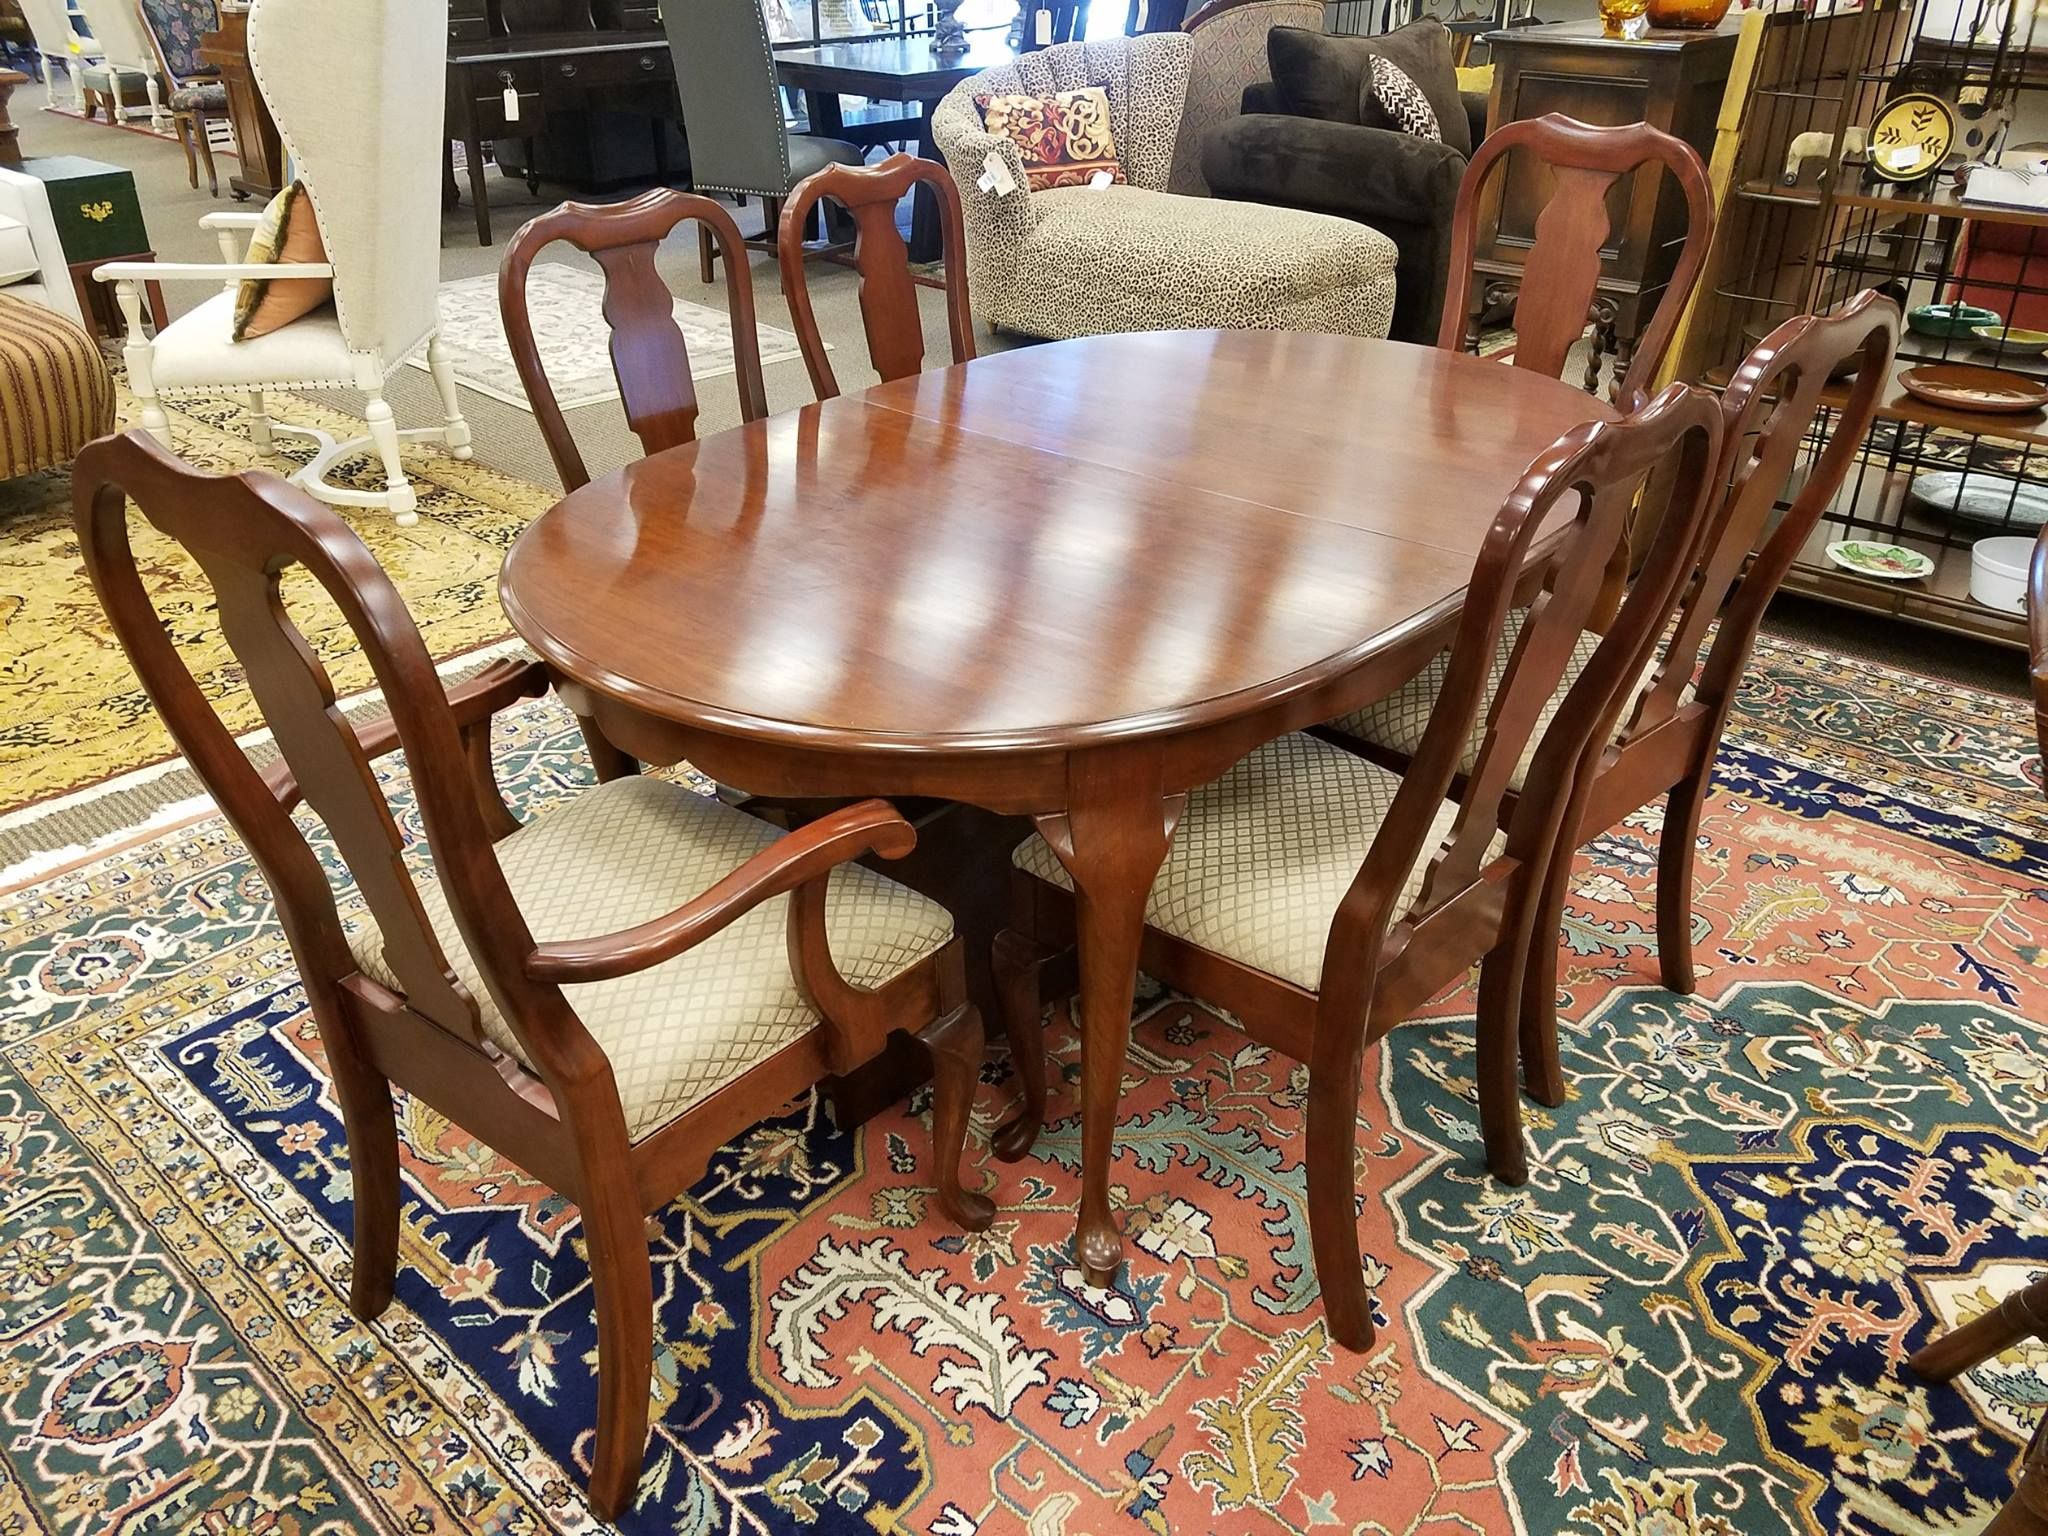 This Pennsylvania House Dining Table Is $499 Which Includes A Set Best Pennsylvania House Dining Room Set Review